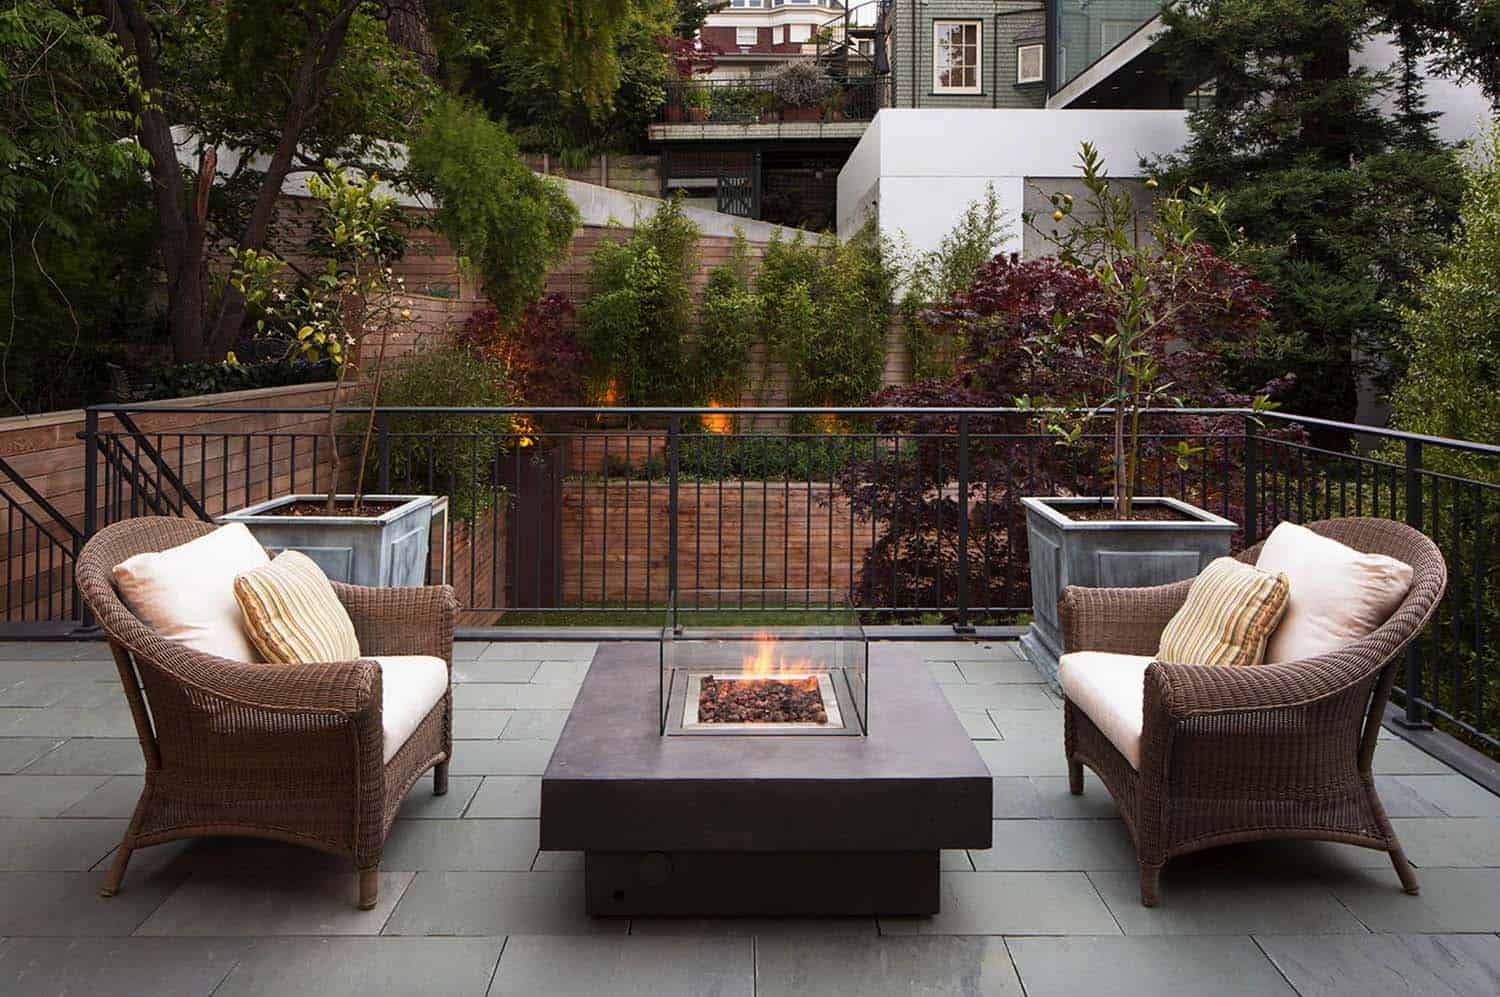 25+ Fabulous outdoor patio ideas to get ready for spring ... on Patio Renovation Ideas id=49323